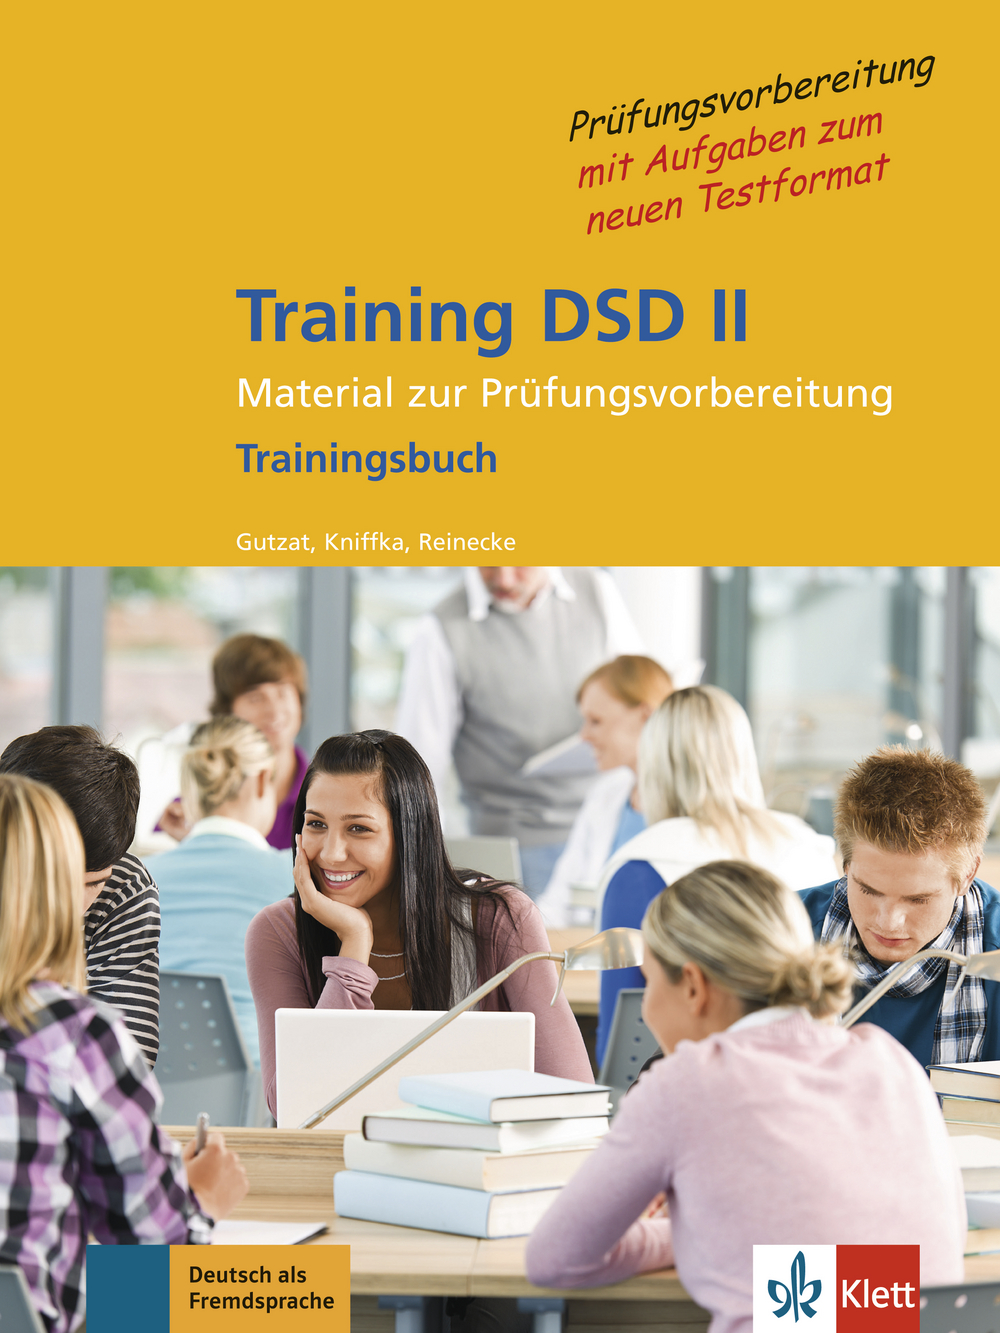 Training DSD II